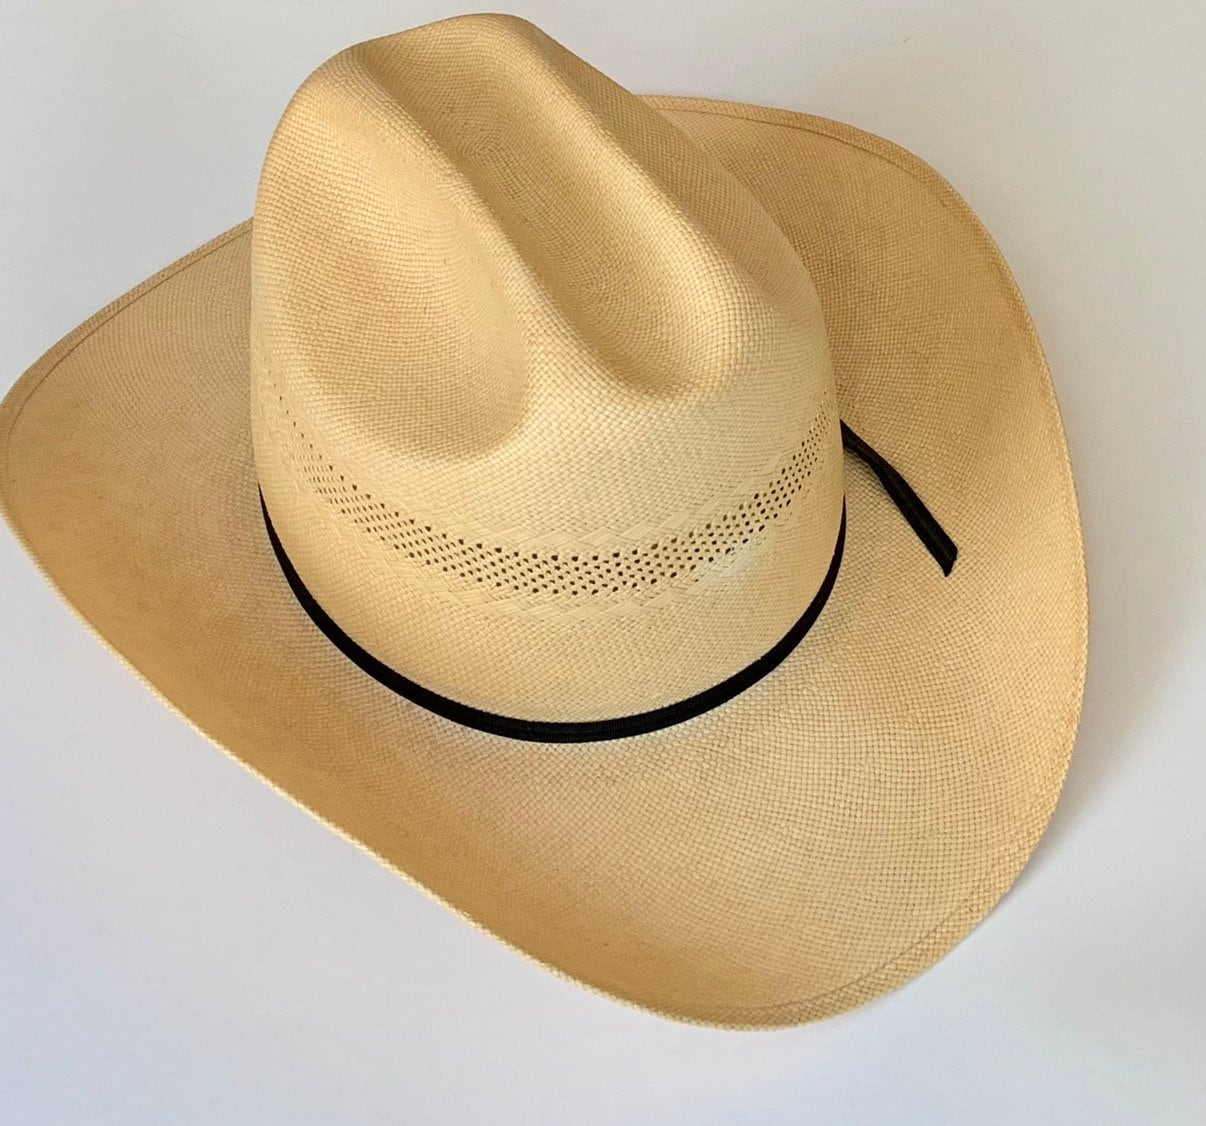 575f3419 Tony Lama Cowboy Hat Vintage Milano Hats Made in USA Cream Beige 6X ...